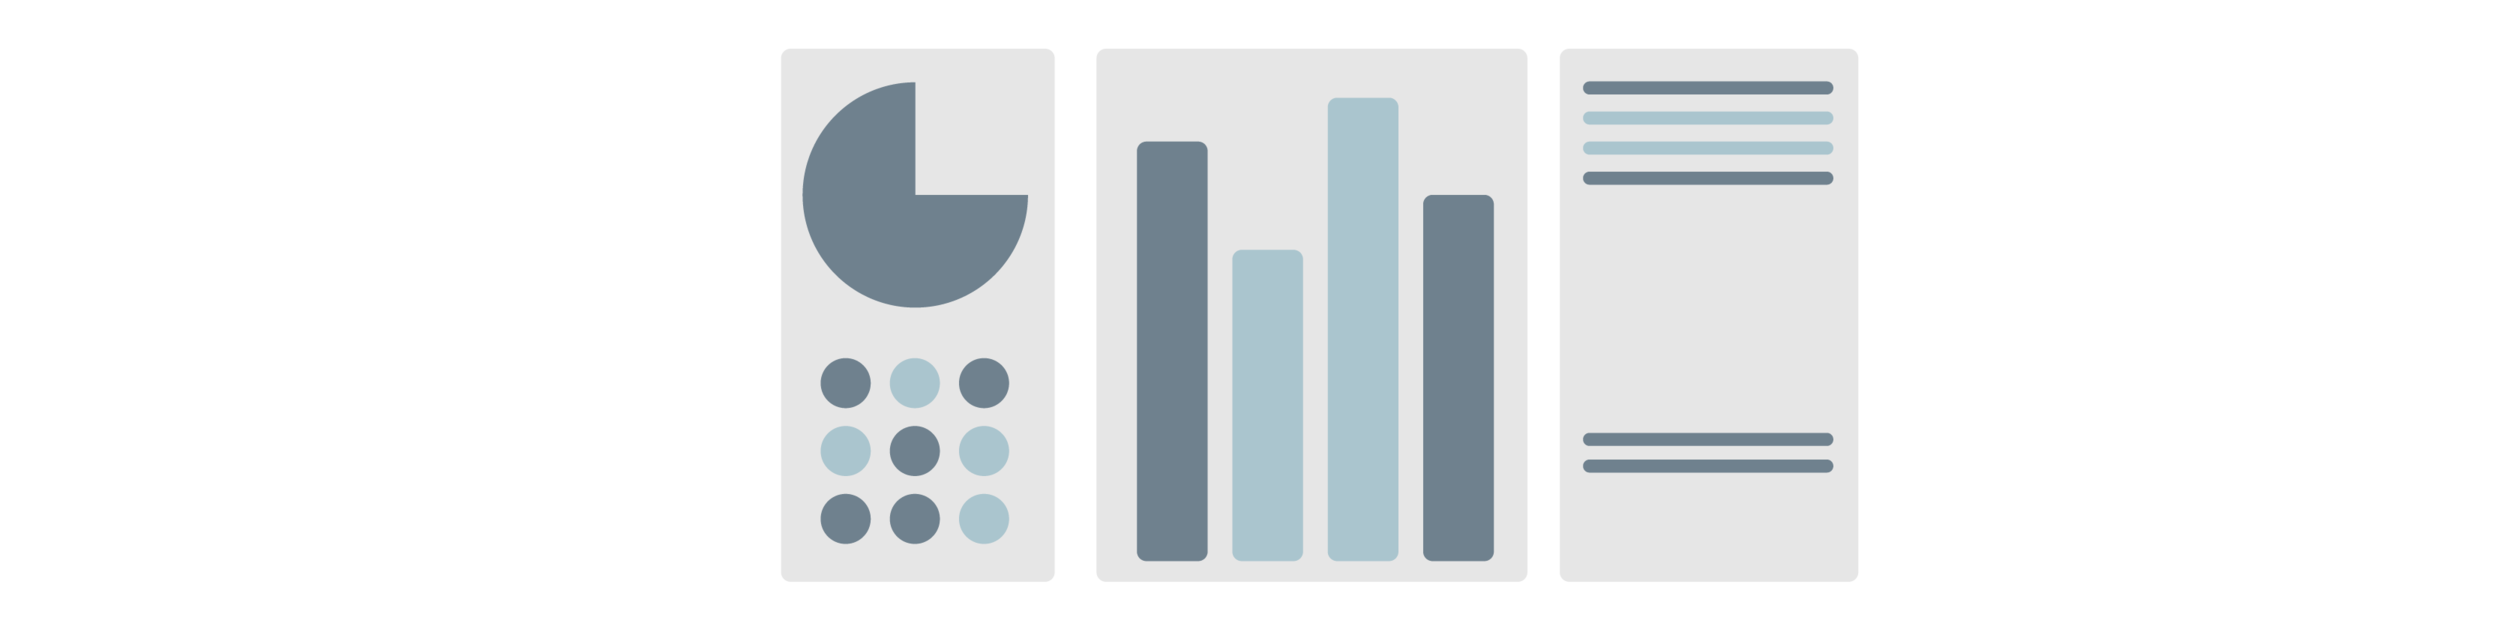 LC Pro Service Icons-08.png